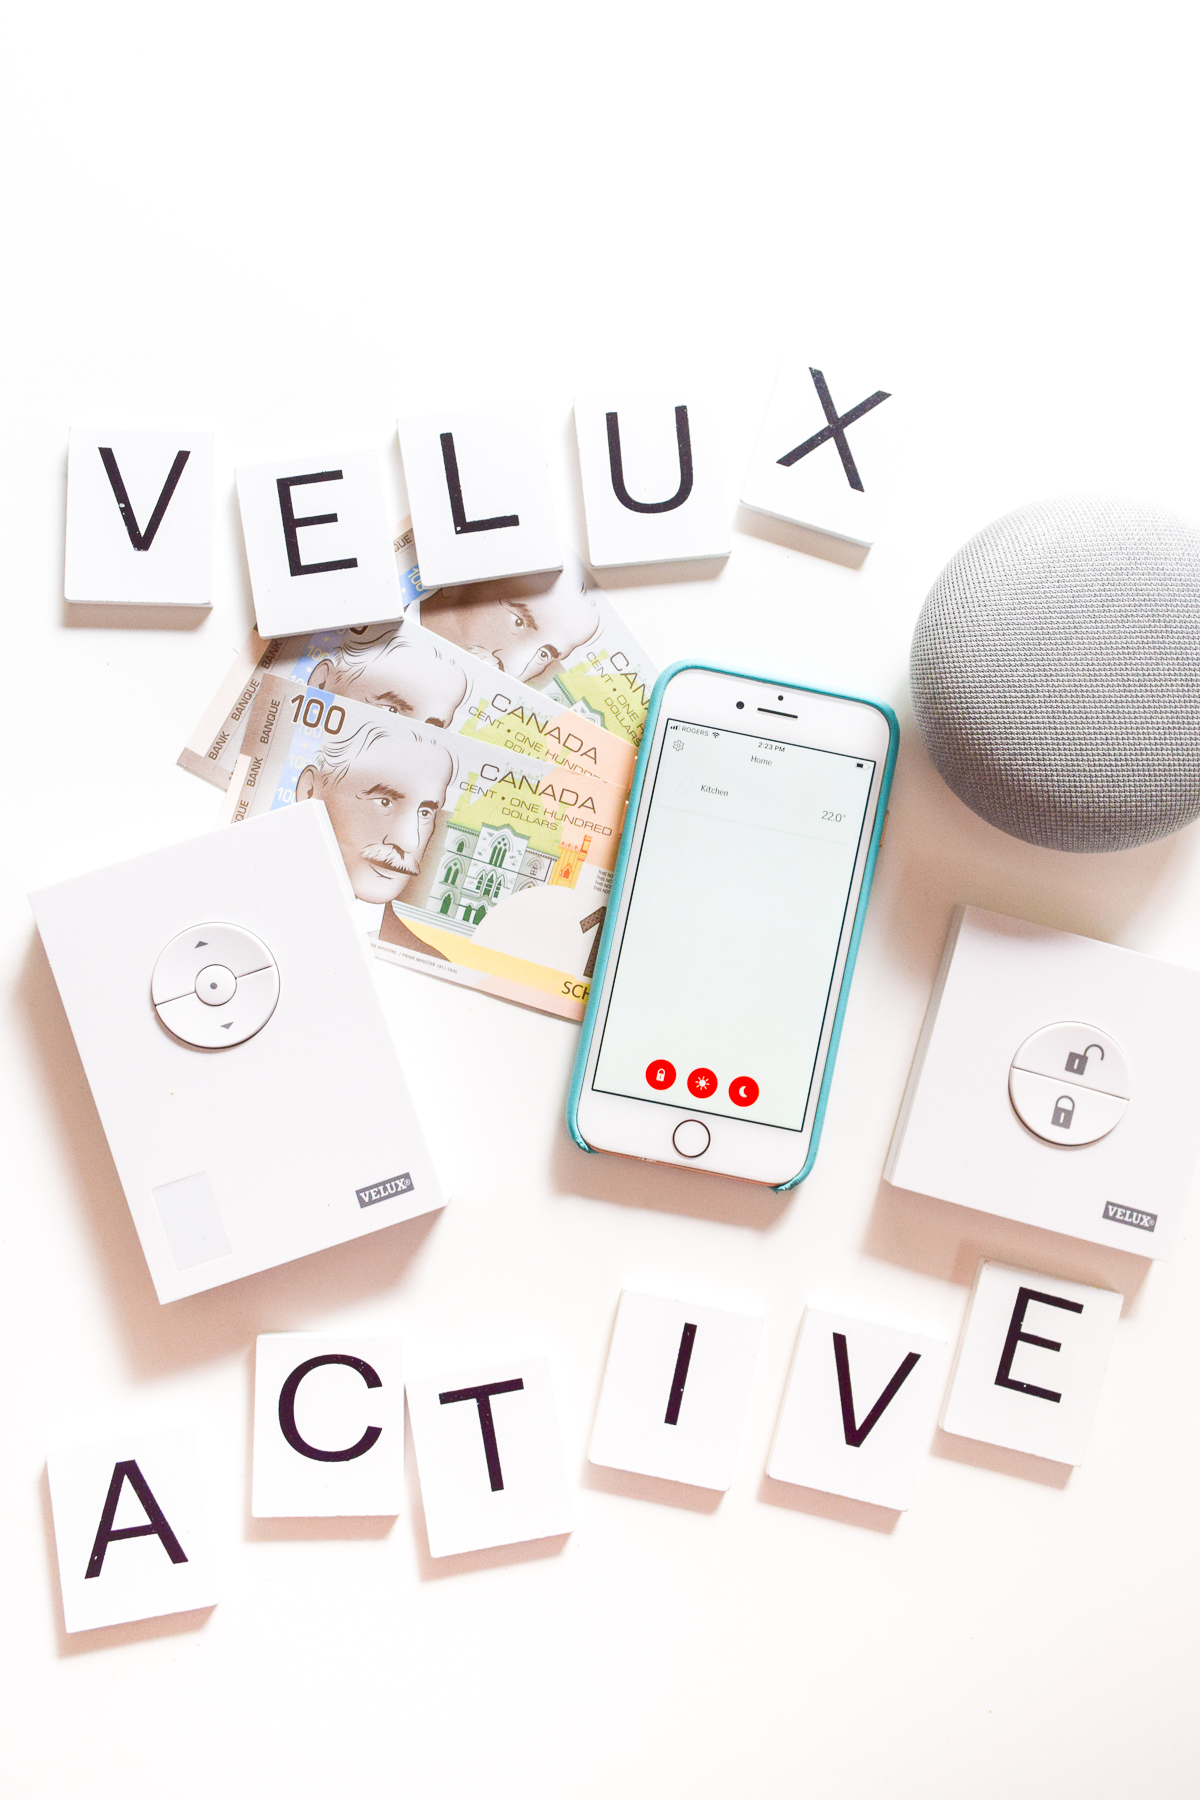 With our VELUX Skylight, we also installed the VELUX ACTIVE system to better integrate the new addition into our smart home. Curious about why and how?